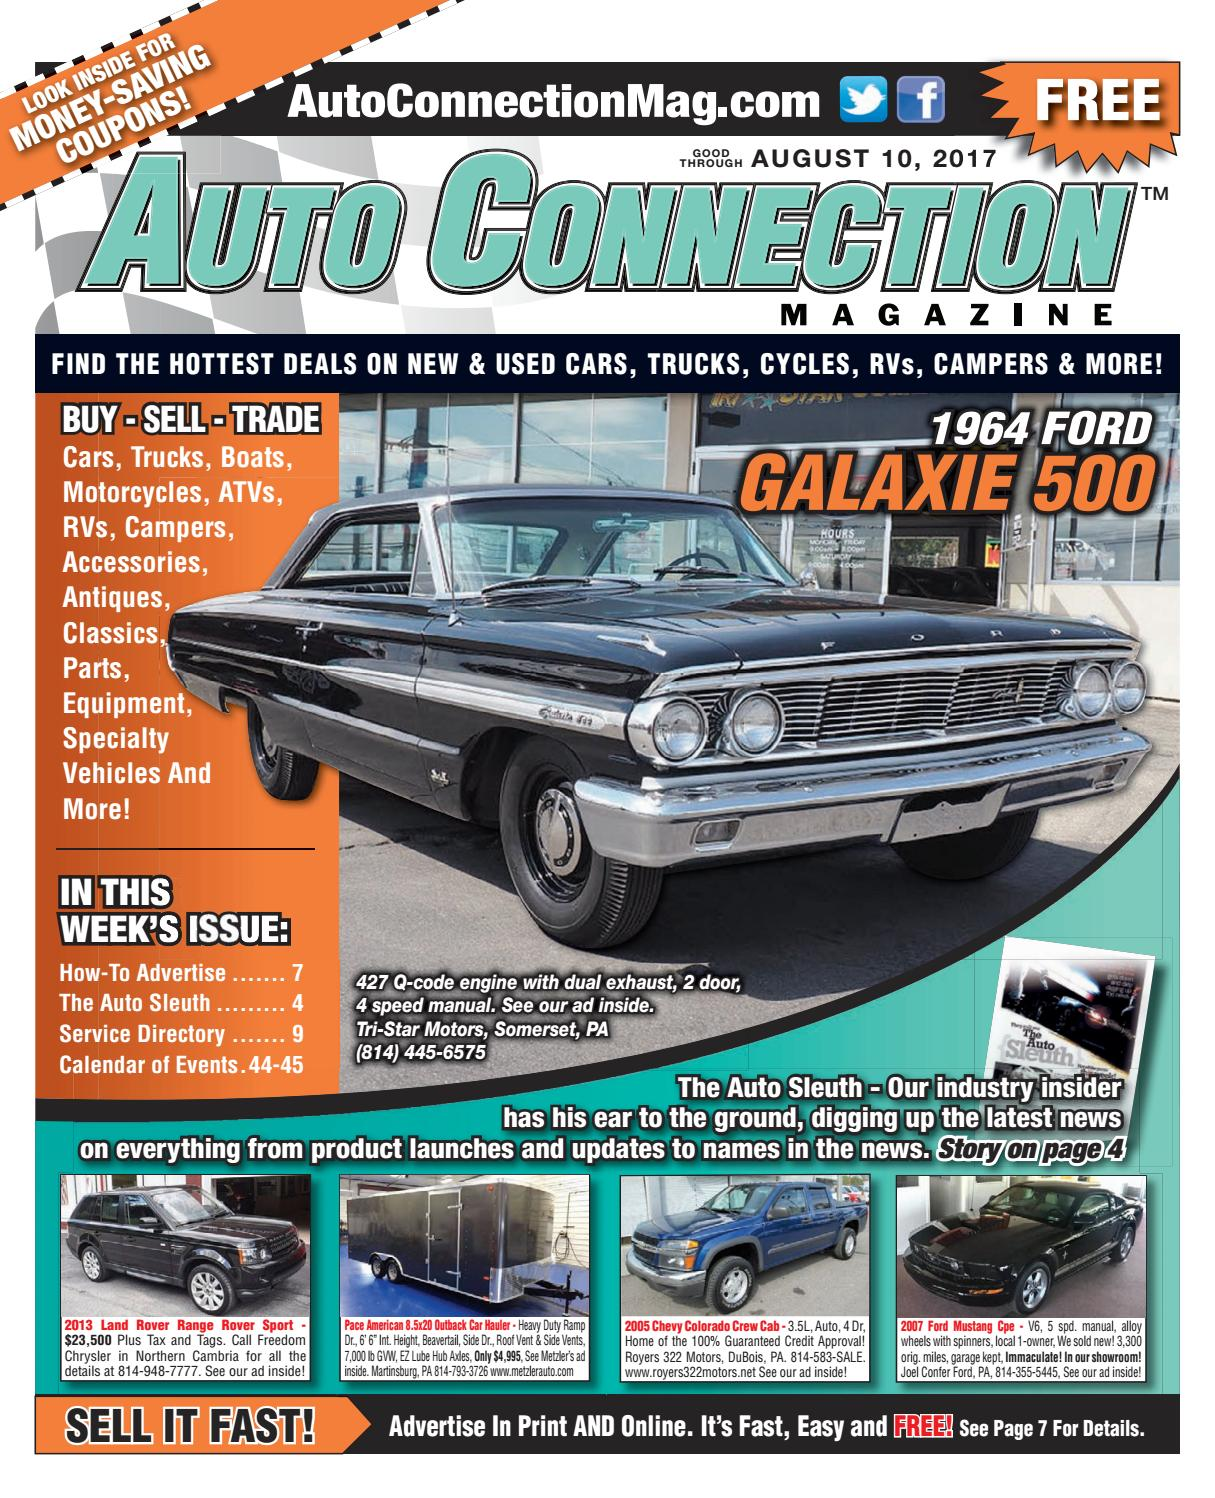 08-10-17 Auto Connection Magazine by Auto Connection Magazine - issuu